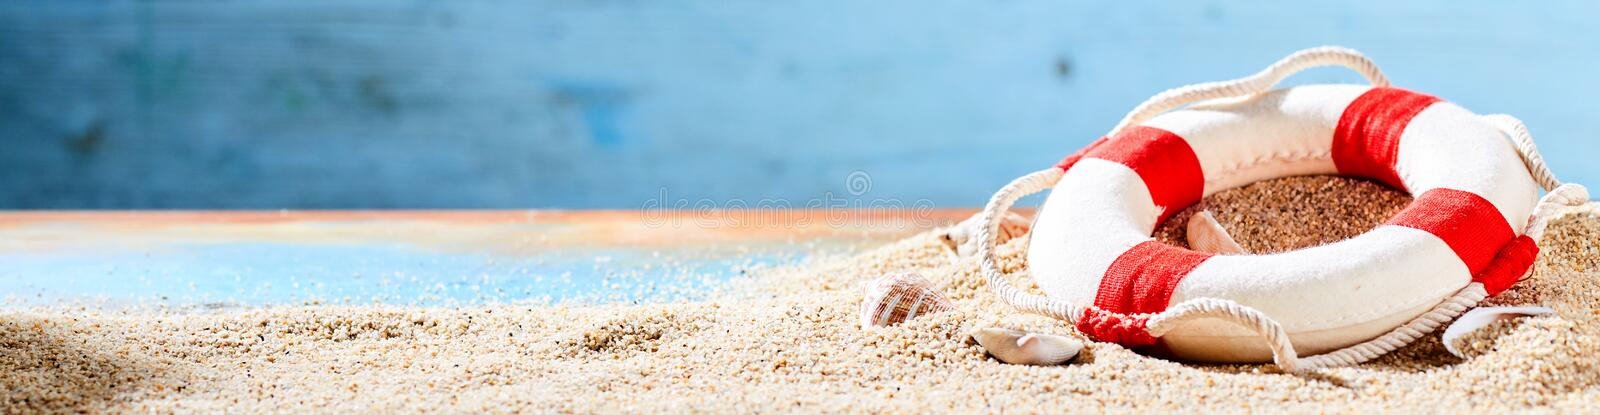 Summer vacations and tropical beach banner stock image